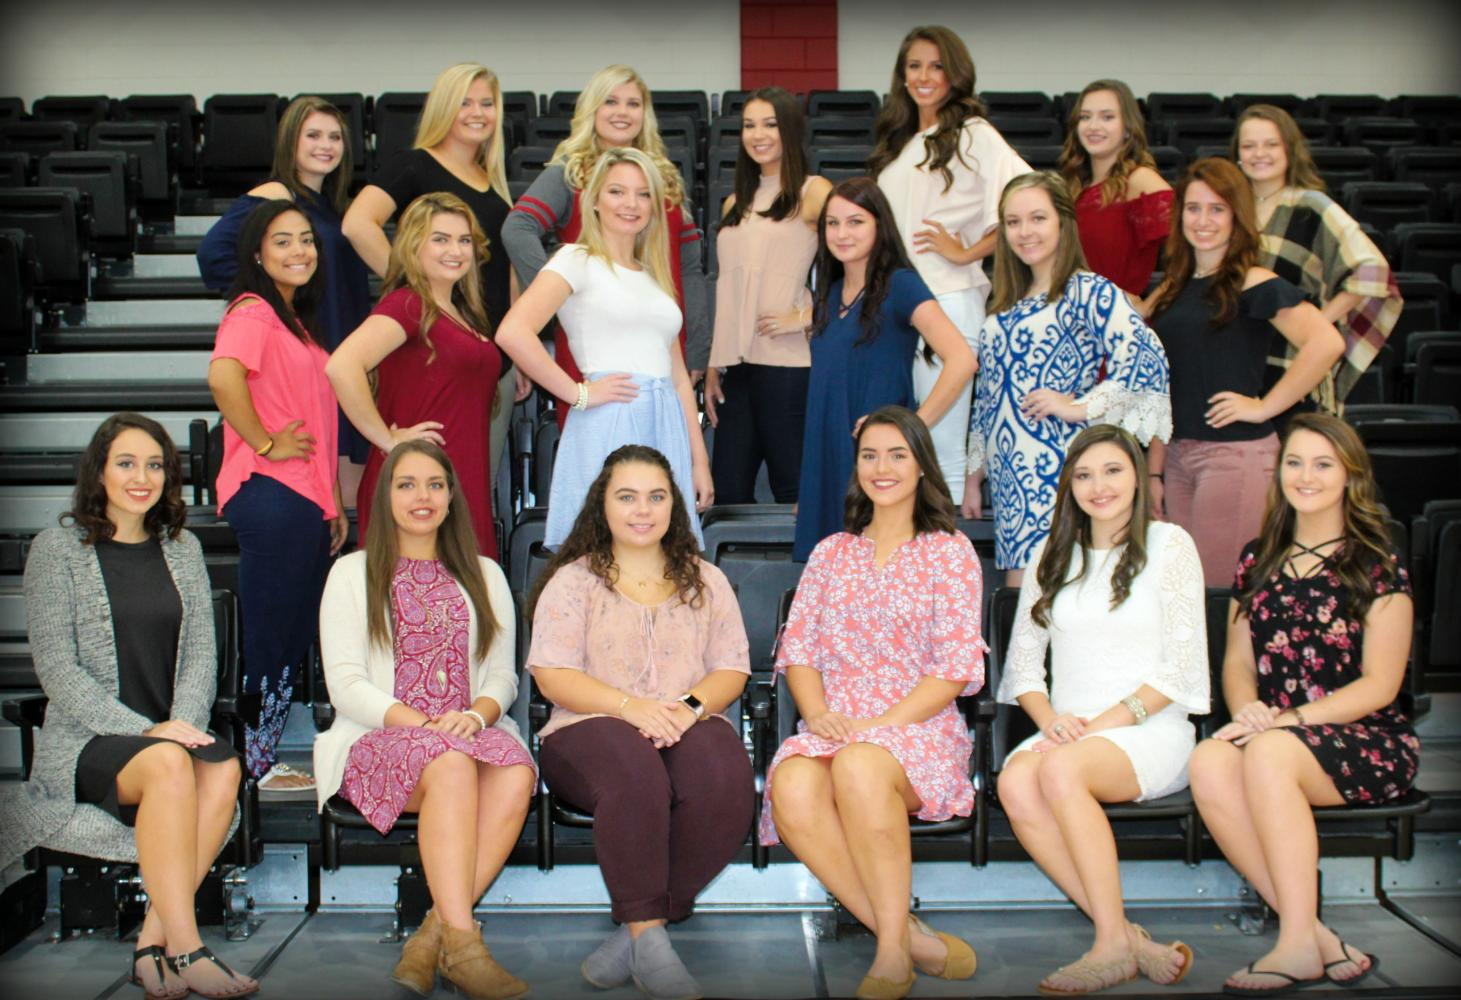 The Harlan County HIgh School homecoming queen will be crowned in ceremonies before Friday's game against Knox Central. Senior candidates include, from left, front row: Dacey Bailey, Chelsey Caldwell, Regan Caudill, Allison Cook, Shawnee Cress and Emily Eldridge; middle row: Kali King, Kerstin Perkins, Brooke Hensley, Hannah Housley, Breanna Madison and Kailee Ewald; back row: Grayson Raleigh, Taylor M. Johnson, Chelsey Noe, Brooke Pace, Blair Green, Karyssa Lamb and Brianna Smith; not pictured: Megan Witt.